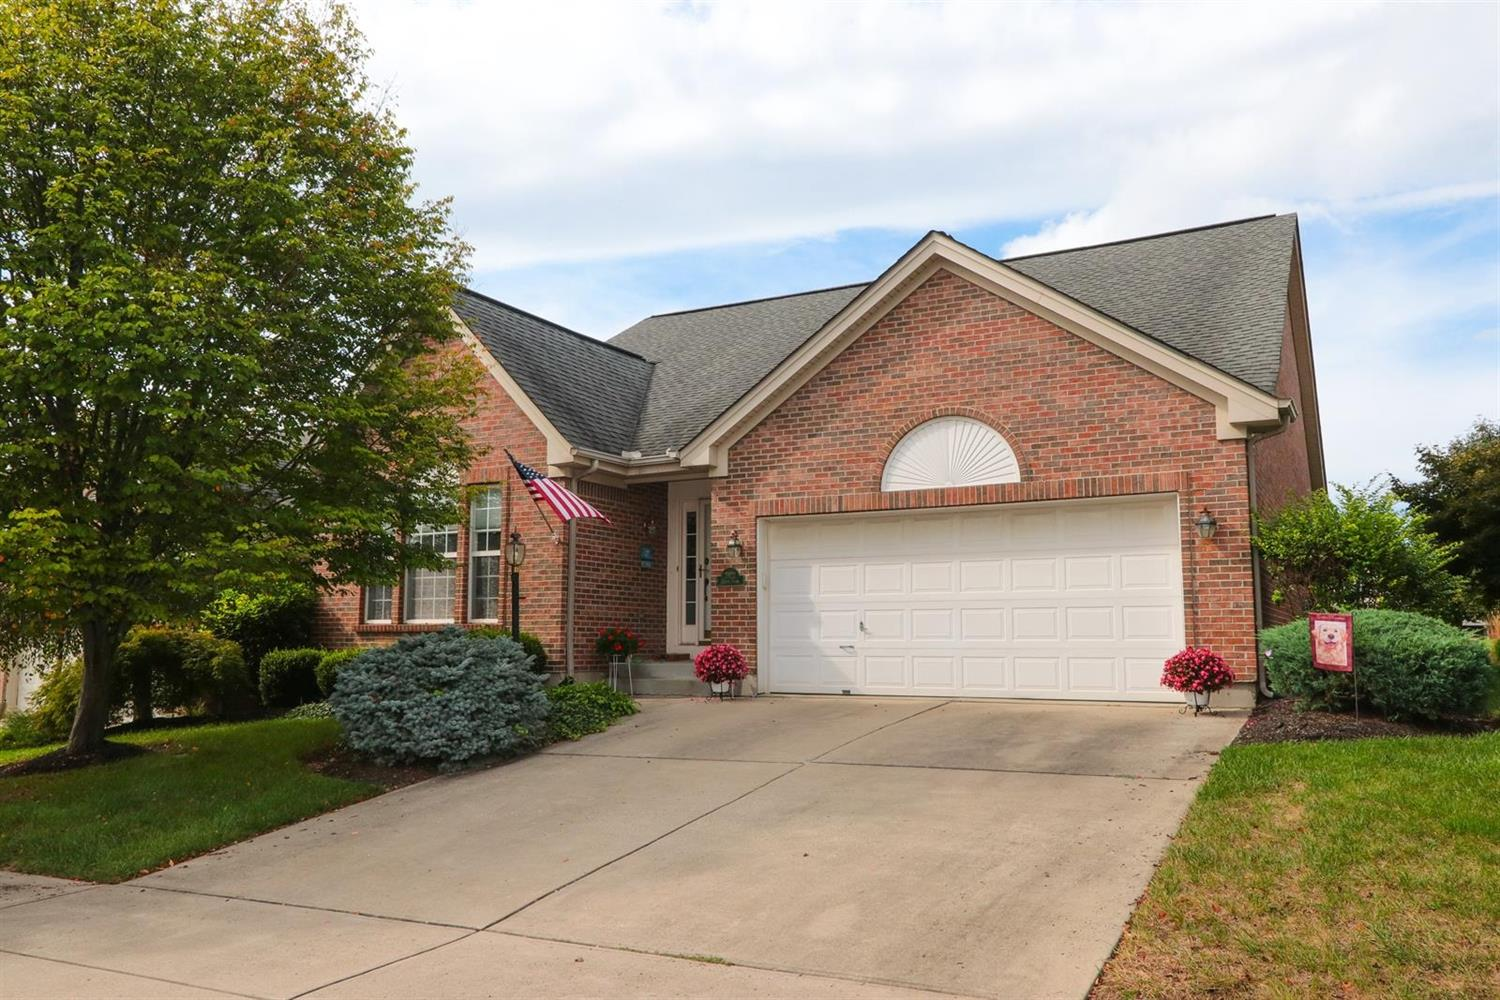 Property for sale at 2922 Baffin Drive, Fairfield Twp,  OH 45011